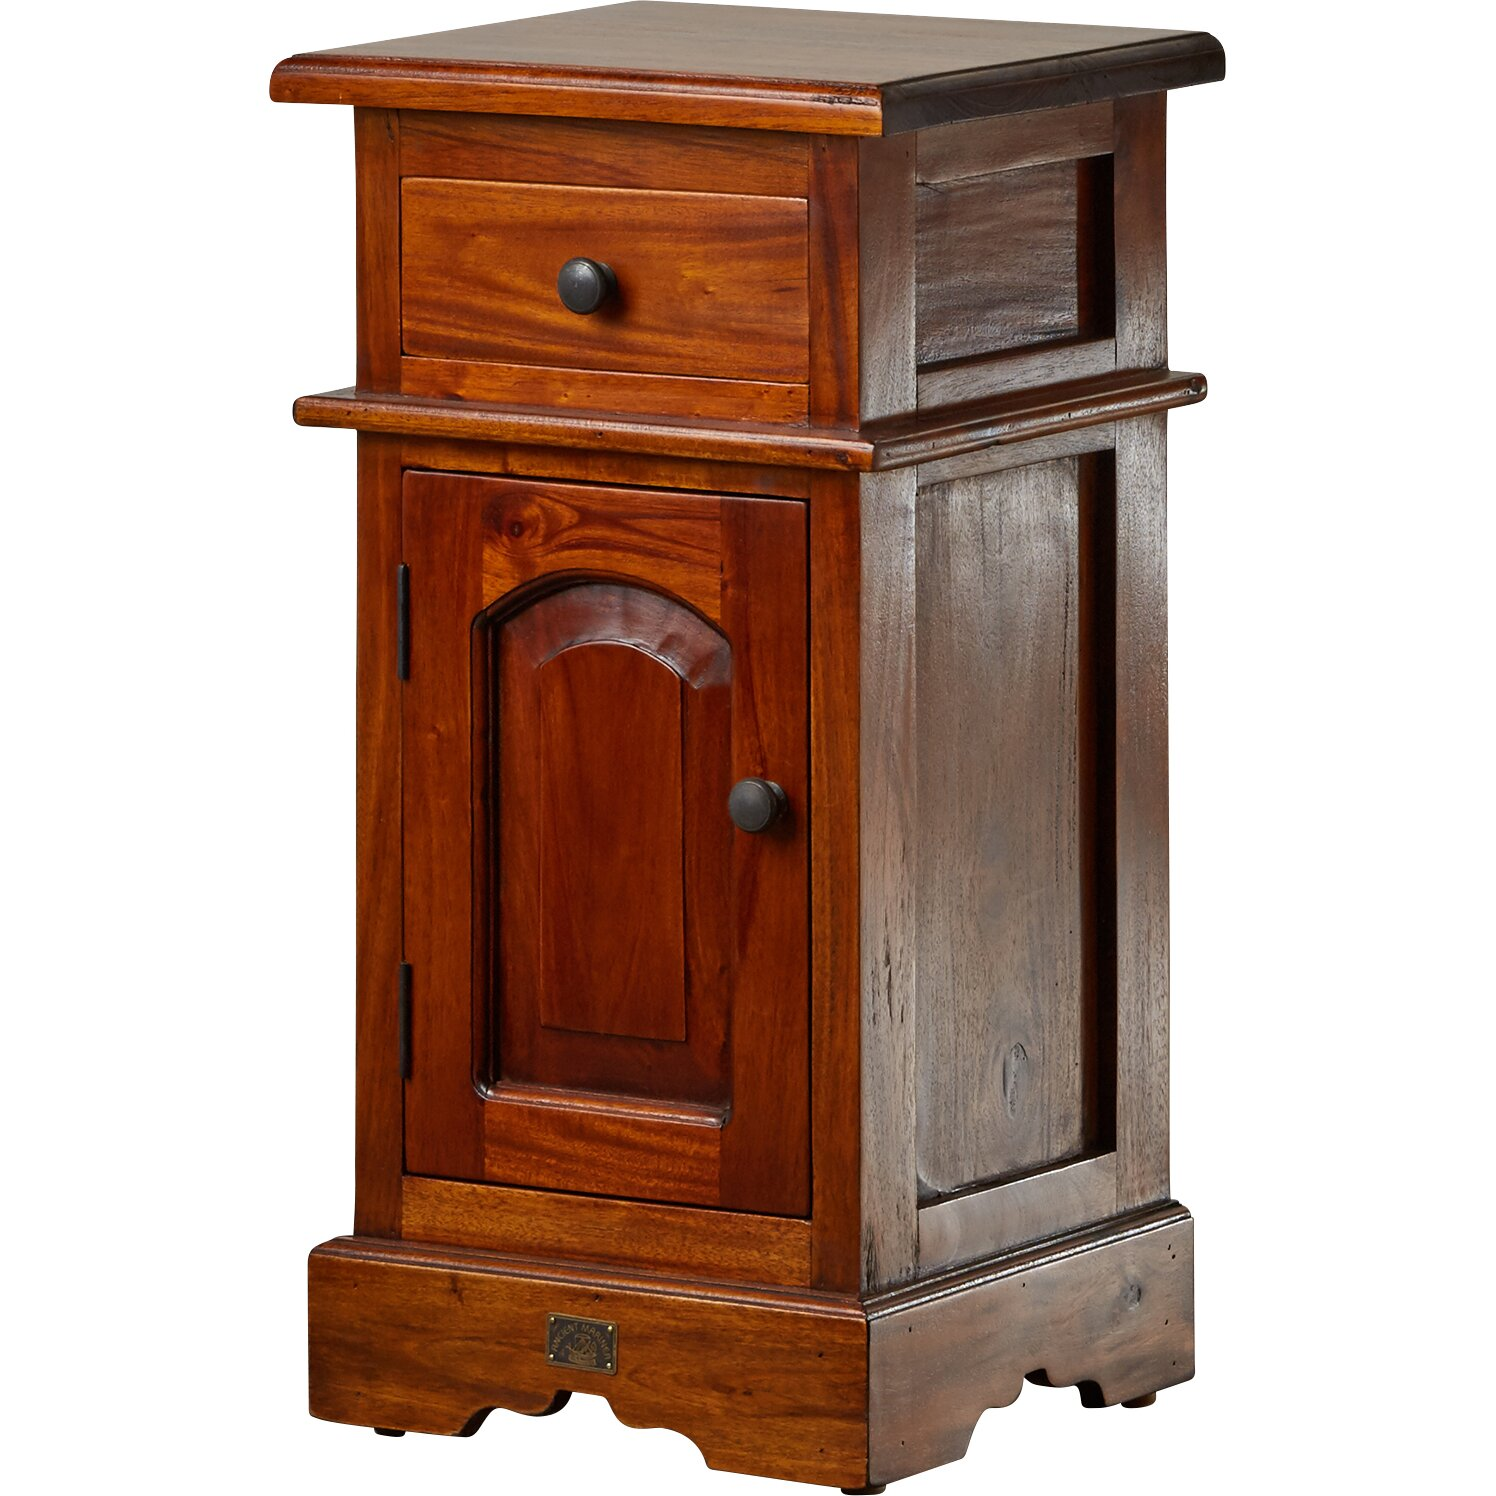 three posts rathbone 1 drawer bedside table reviews. Black Bedroom Furniture Sets. Home Design Ideas